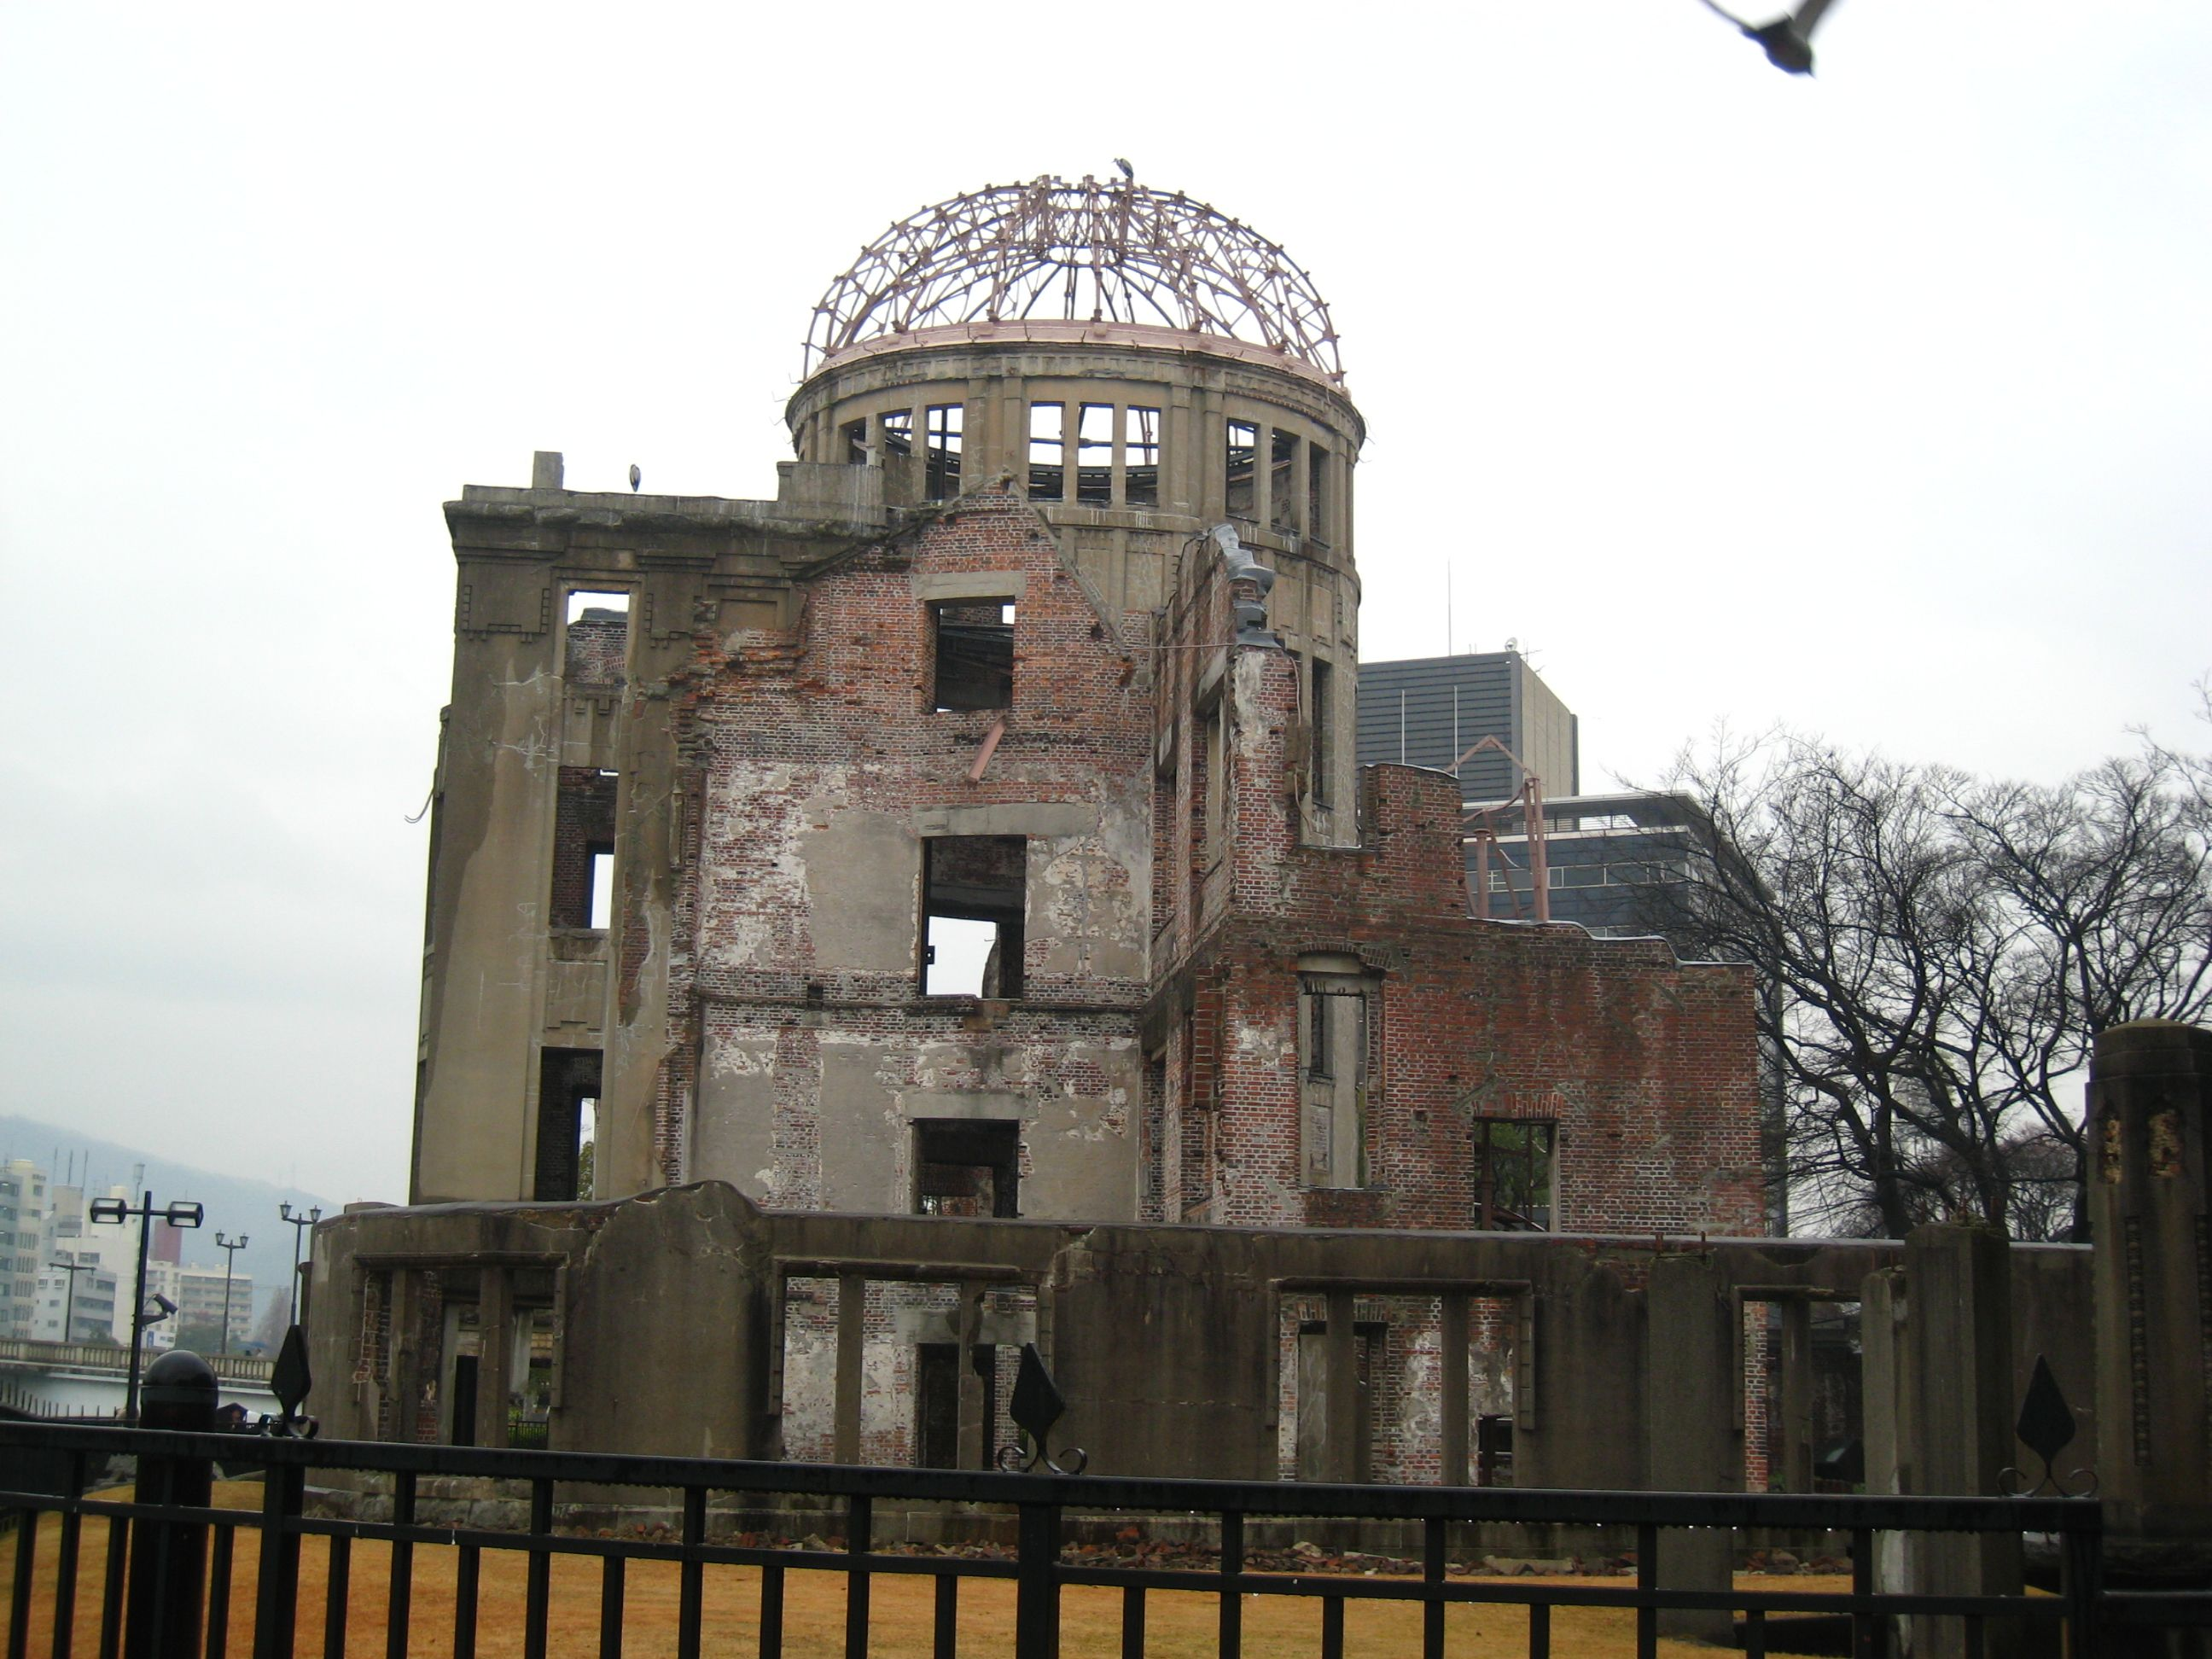 Hiroshima - this building evokes so many emotions. Strange choice, but this was one of my favorite places I've ever been.